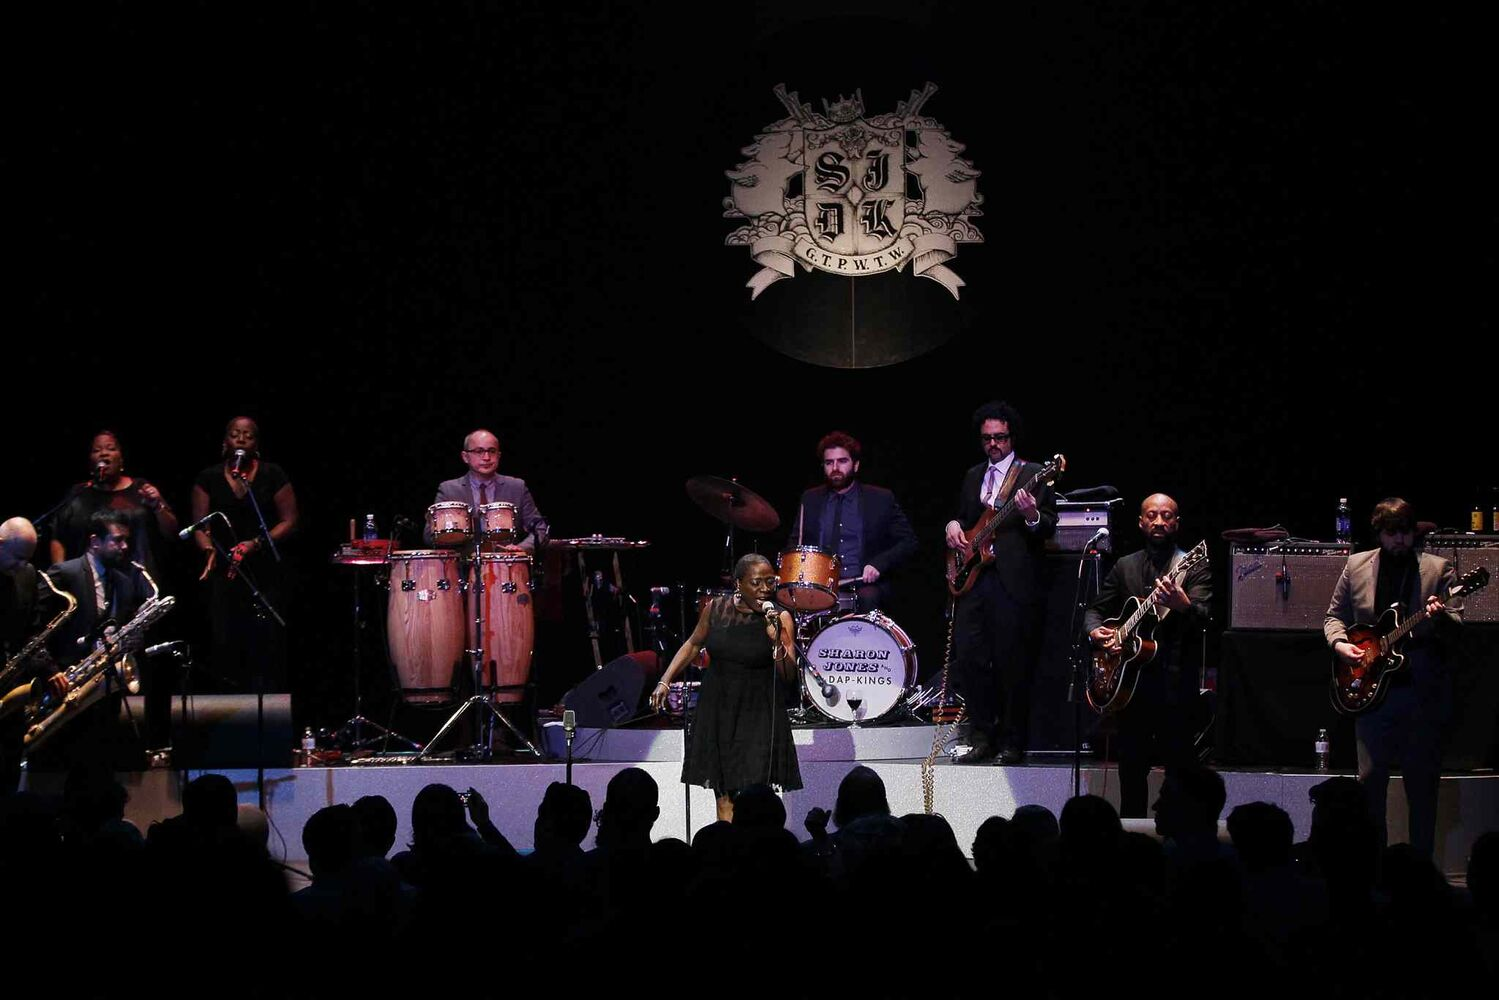 Sharon Jones and The Dap-Kings perform at the Burton Cummings Theatre Tuesday night. (John Woods / Winnipeg Free Press)